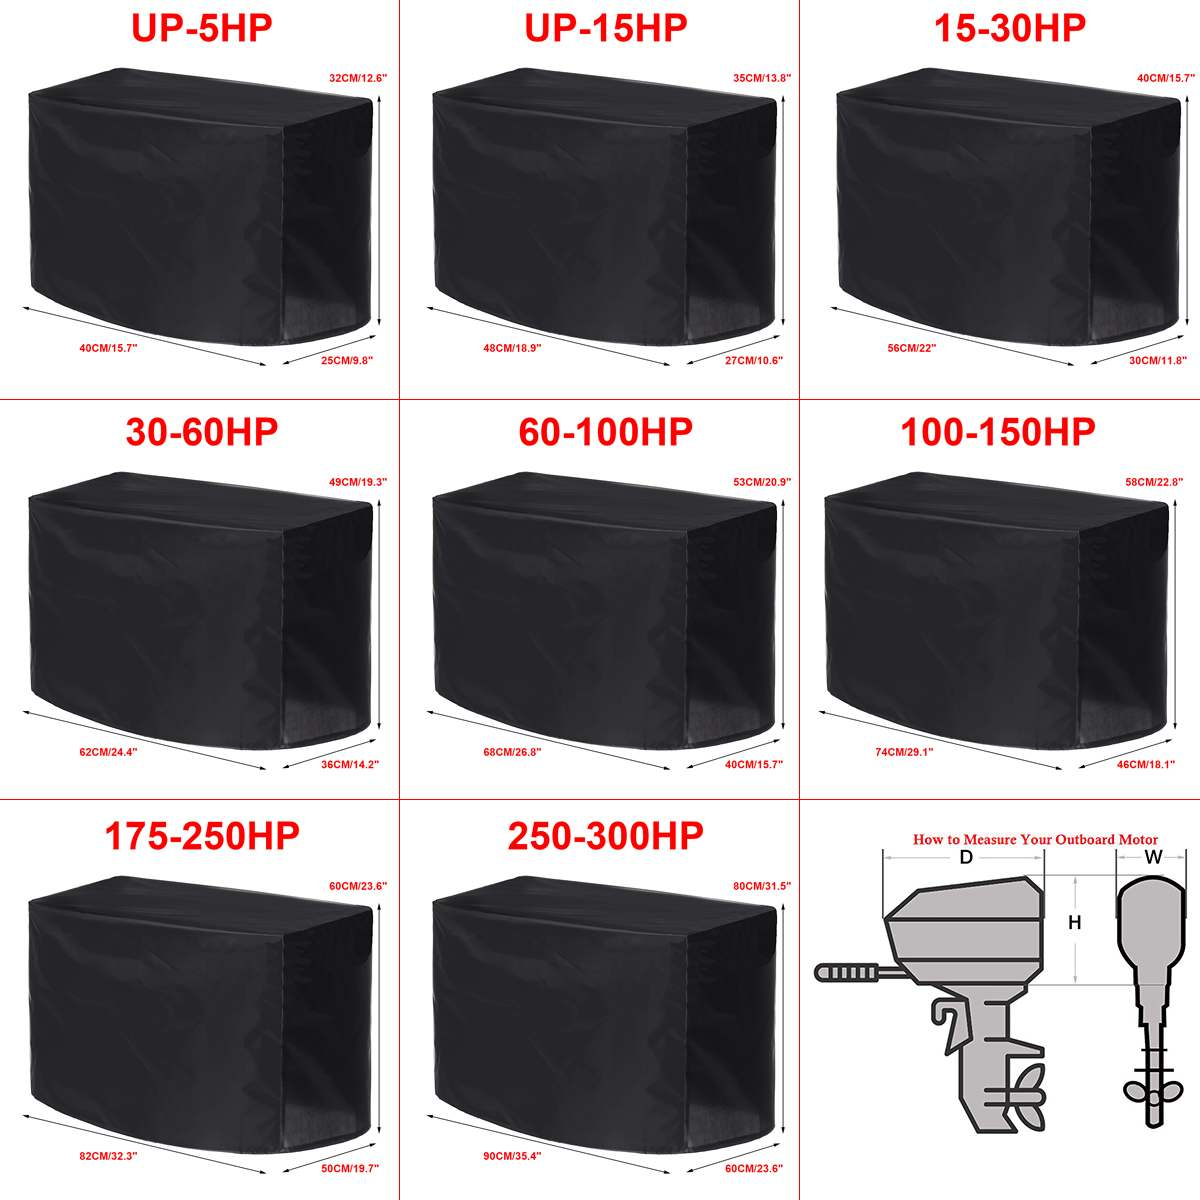 Waterproof Universals Boat 5 15 30 60 100 150 250 300PH Motor Cover Outboard Engine Protector Covers